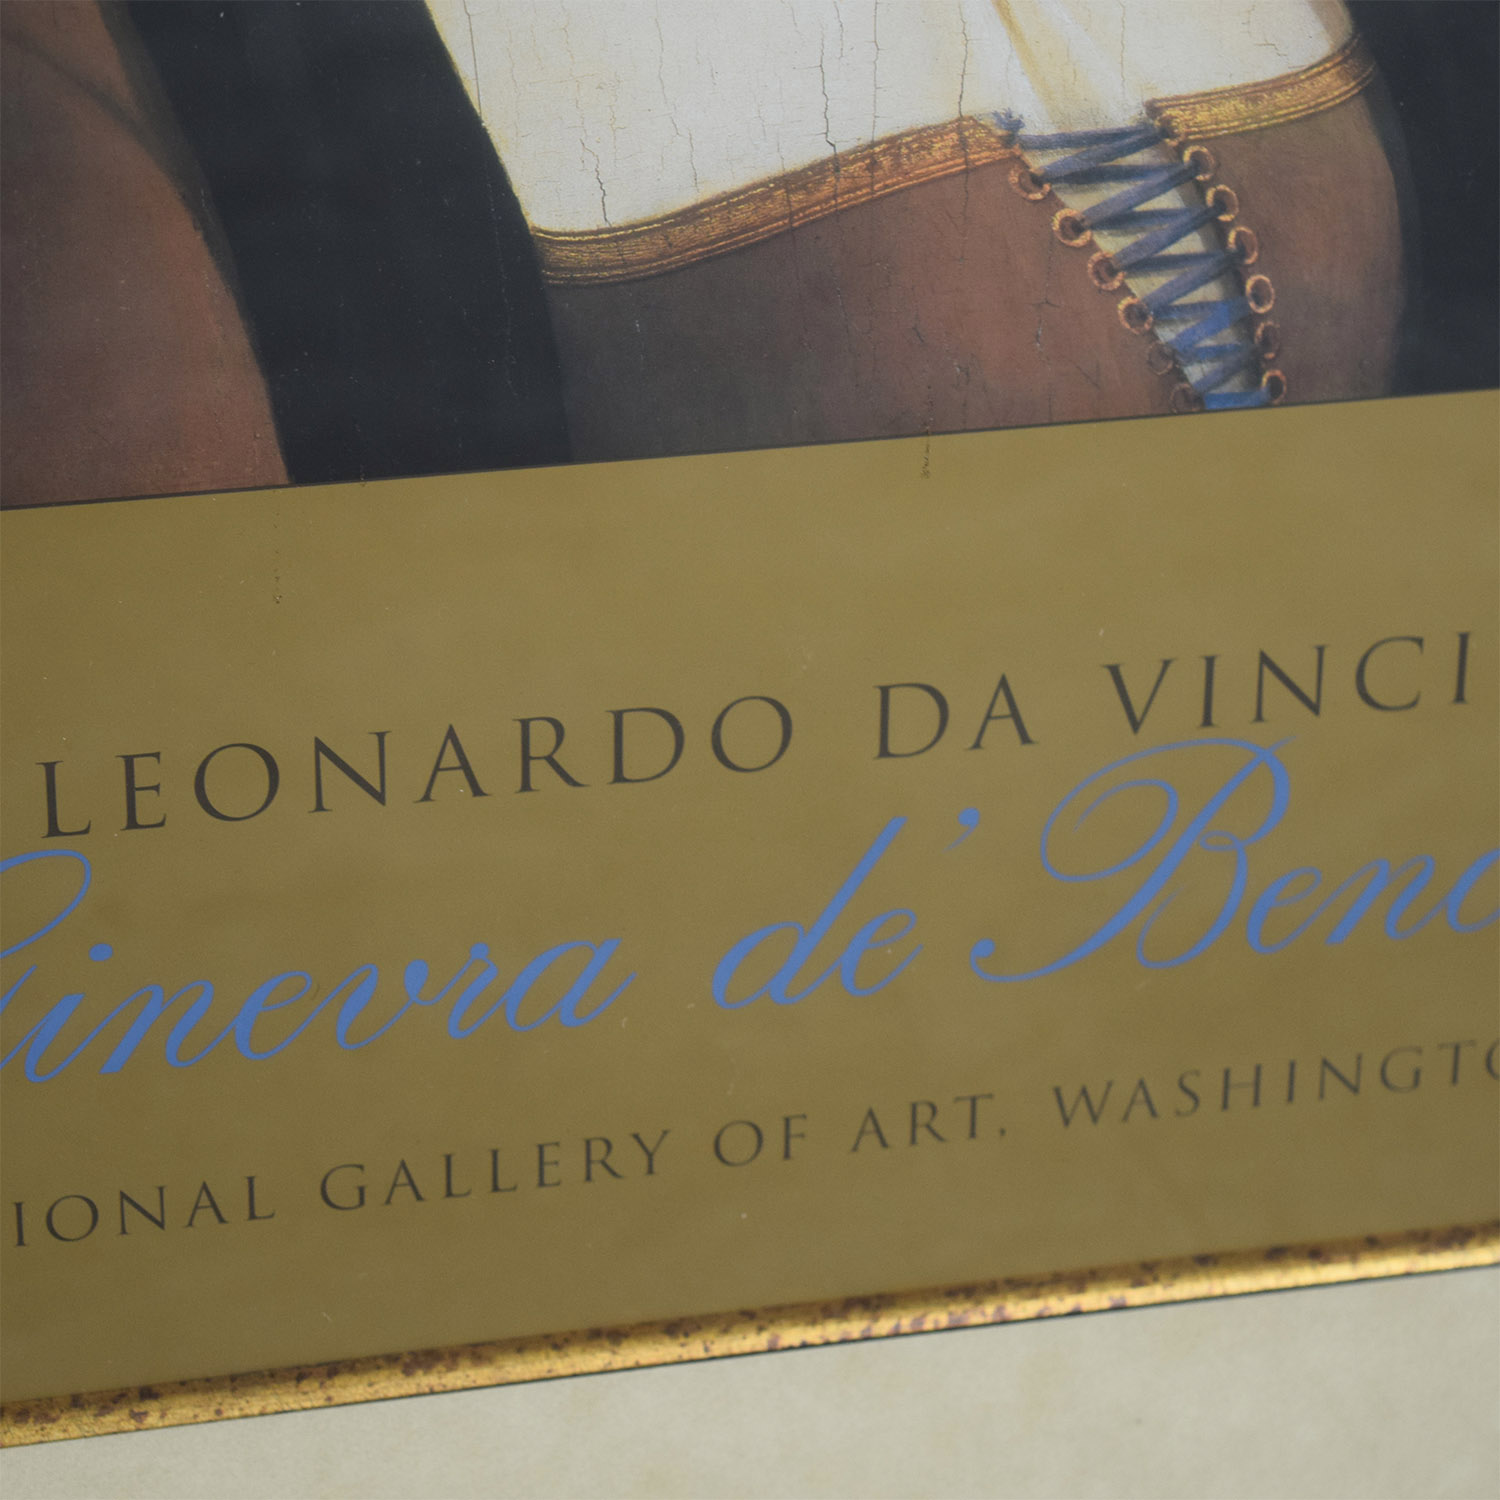 National Gallery of Art National Gallery of Art Leonardo da Vinci Poster used